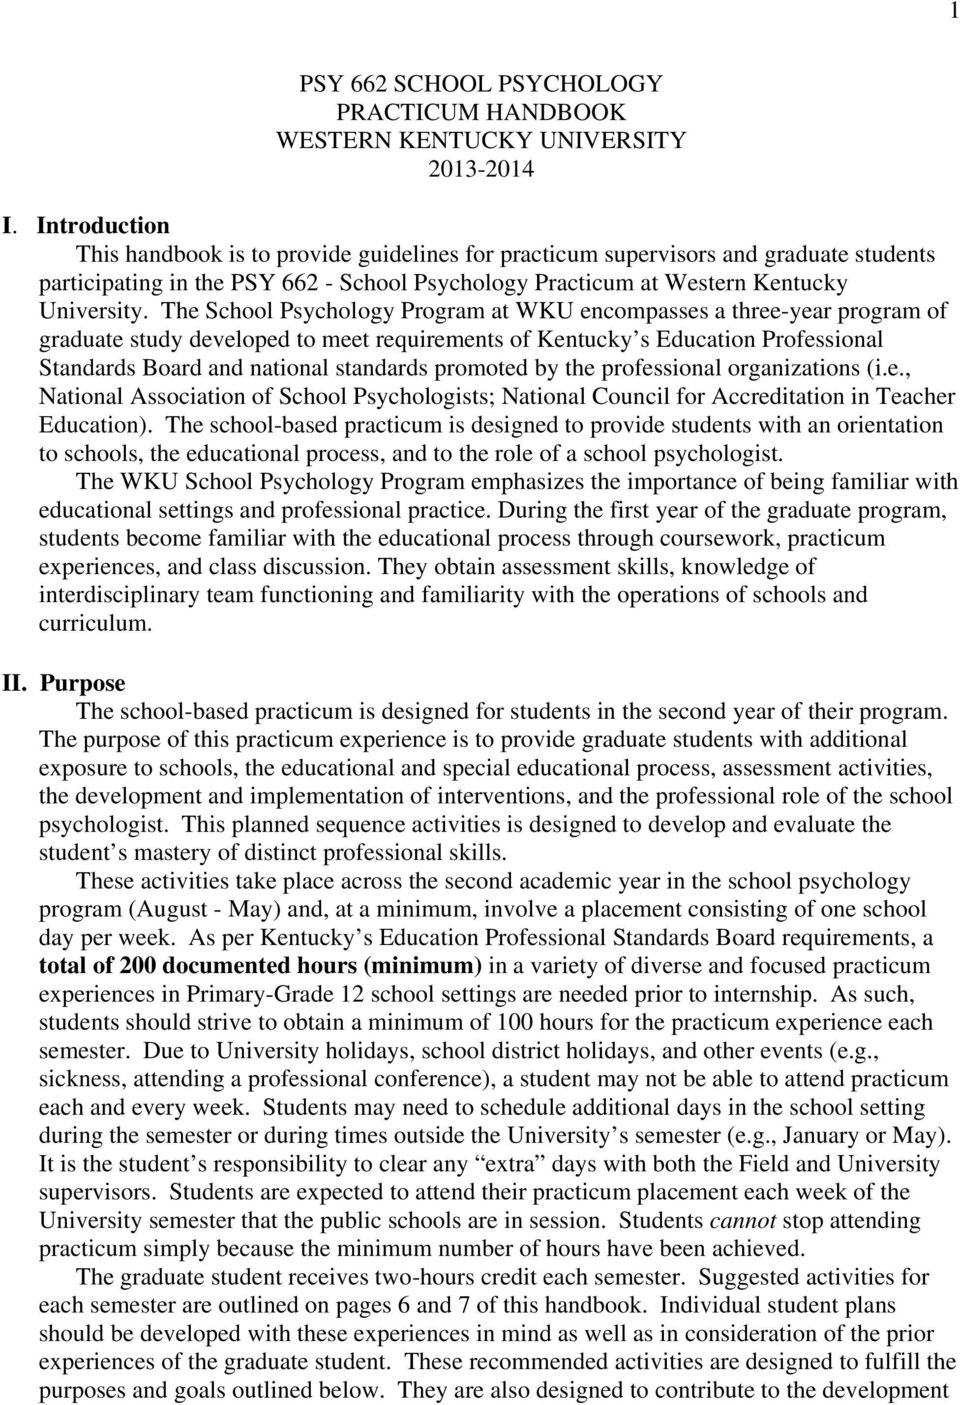 The School Psychology Program at WKU encompasses a three-year program of graduate study developed to meet requirements of Kentucky s Education Professional Standards Board and national standards